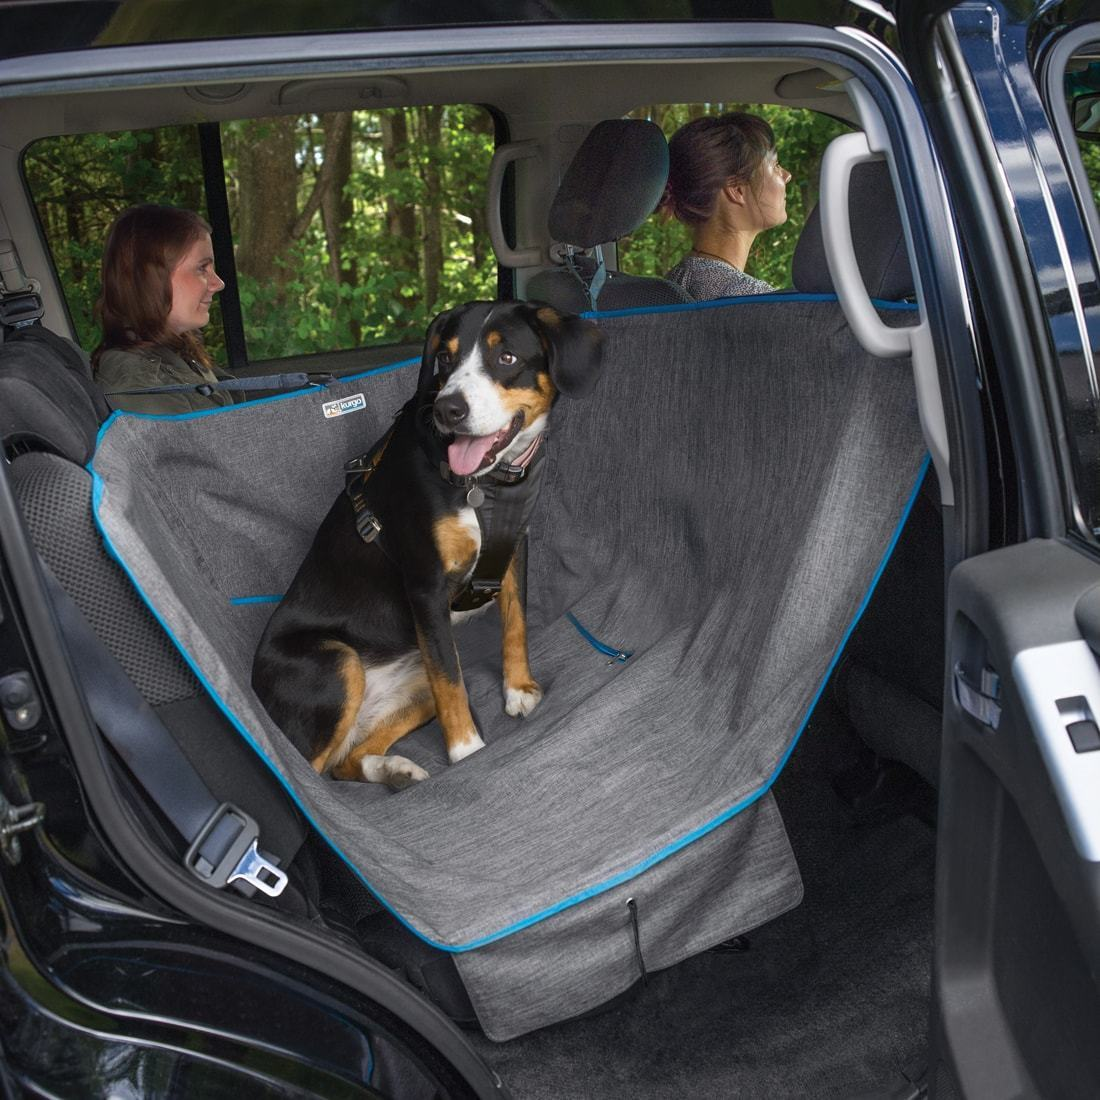 topelek updated waterproof backseat coversuniversal protectortravel anchors safety dog bench nonslip product seat hammock scratch cover version pet car proof with pets